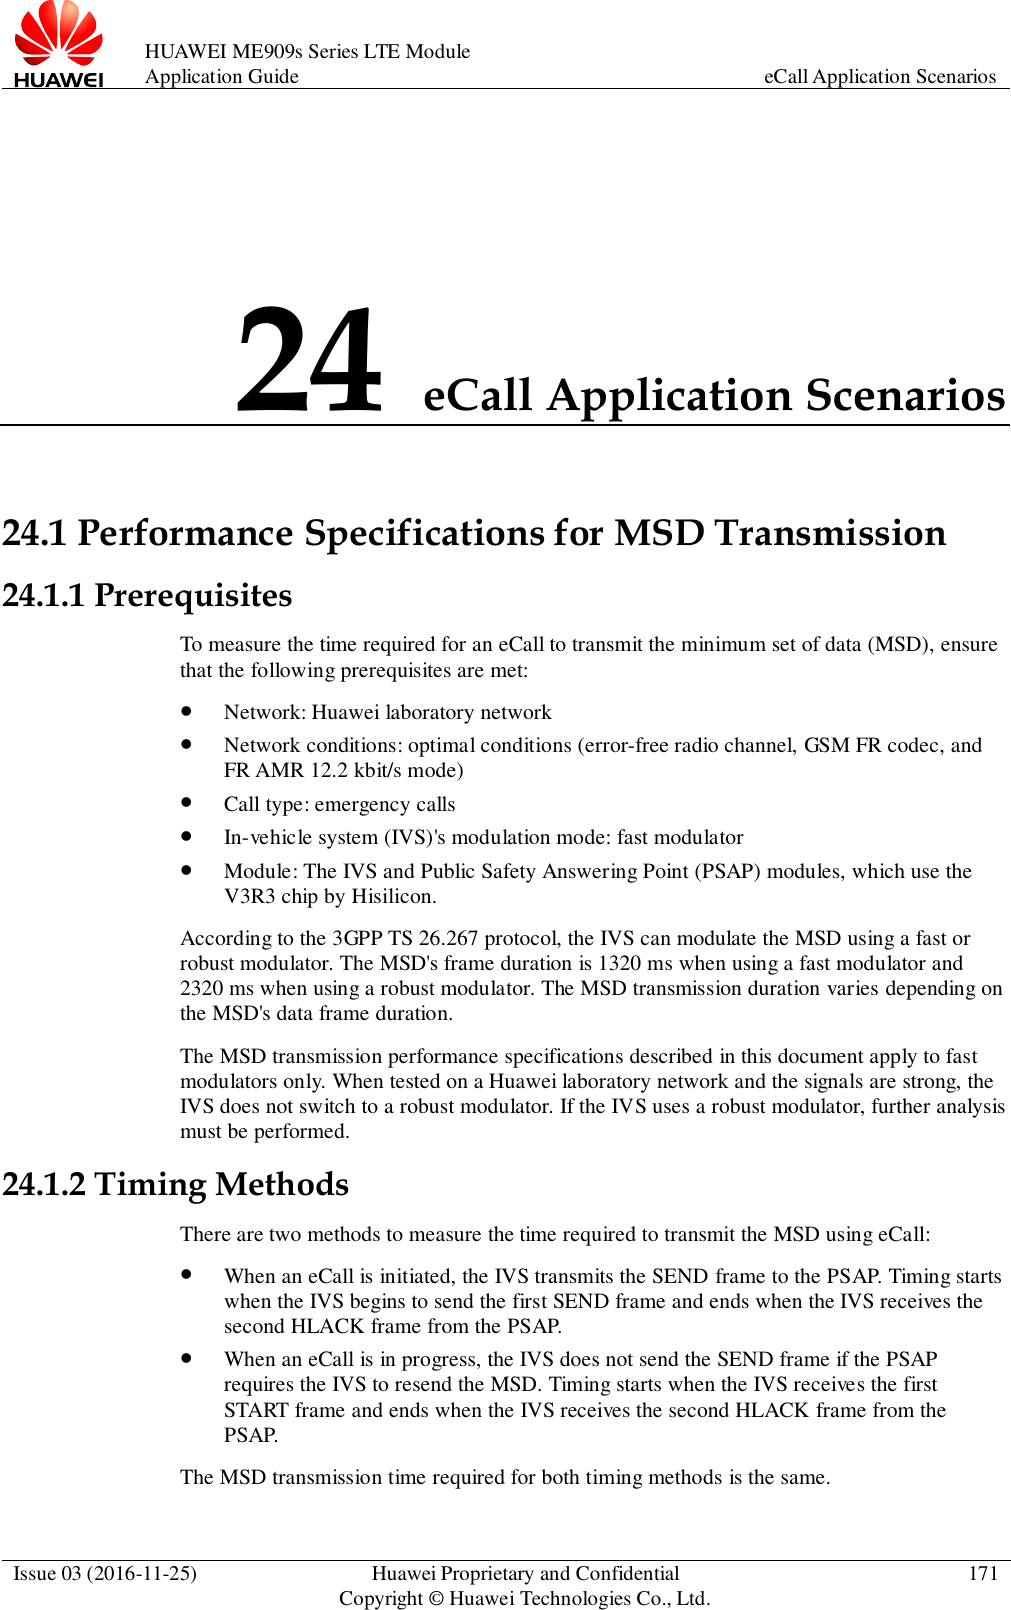 Huawei ME909s Series LTE Module Application Guide (V100R001